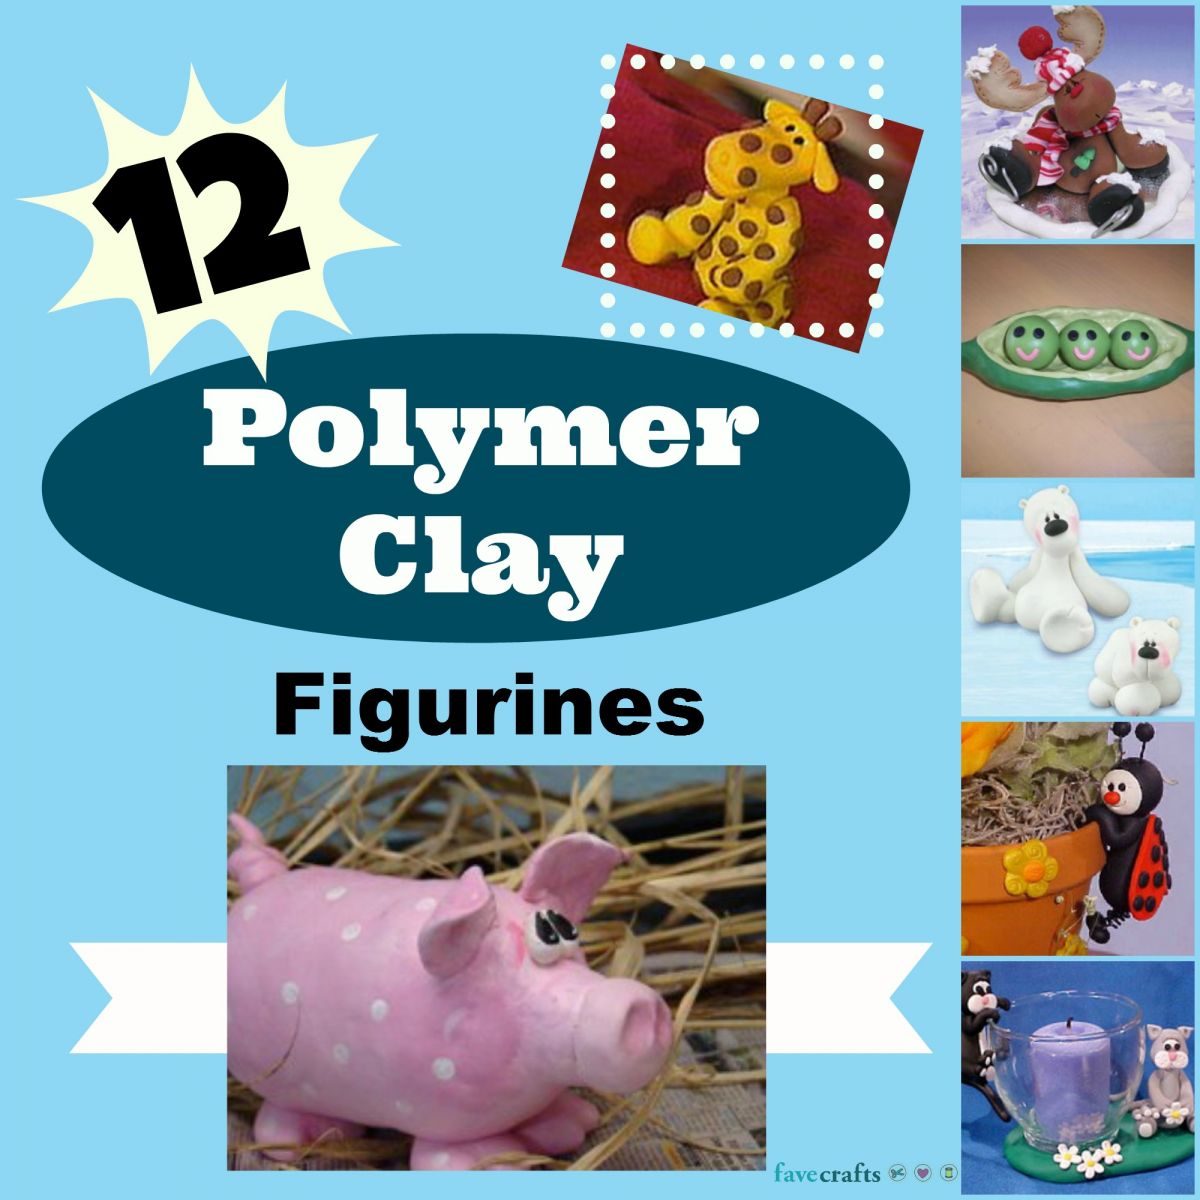 12 Polymer Clay Figurines